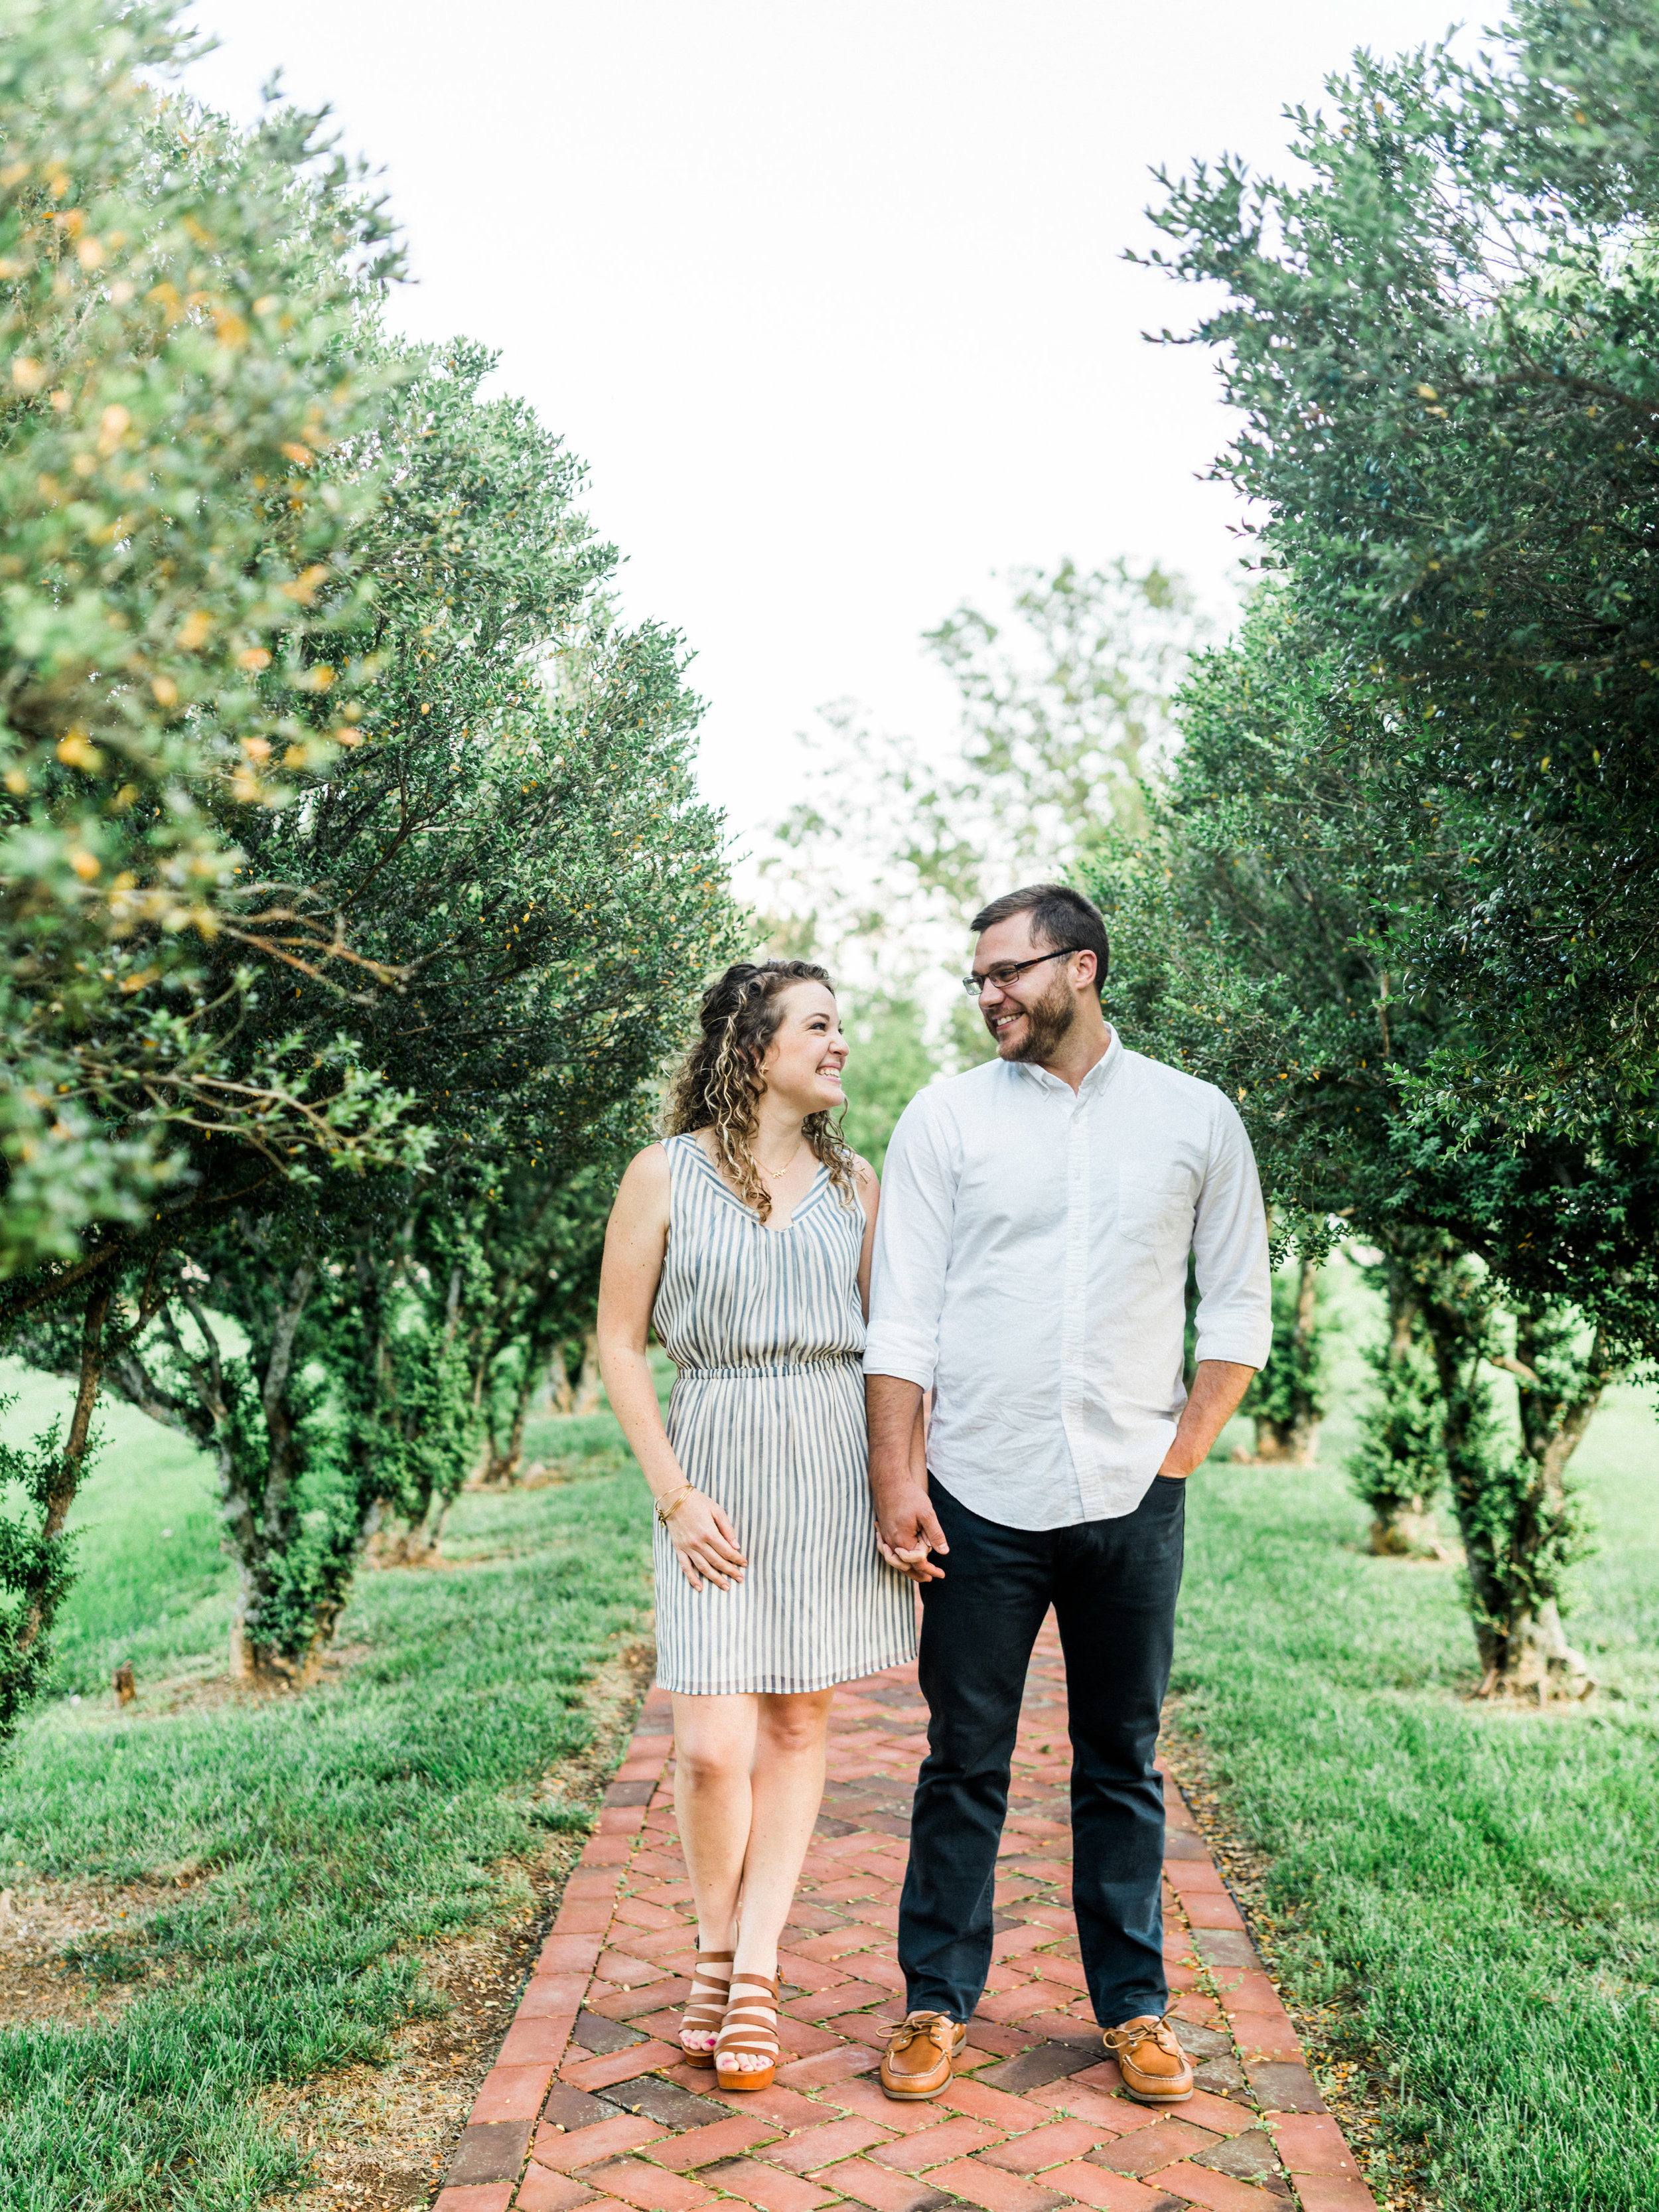 Charlottesville VA Wedding Photographer || Lynchburg Wedding Photographer || www.asheyeiban.com || Ashley Eiban Photography